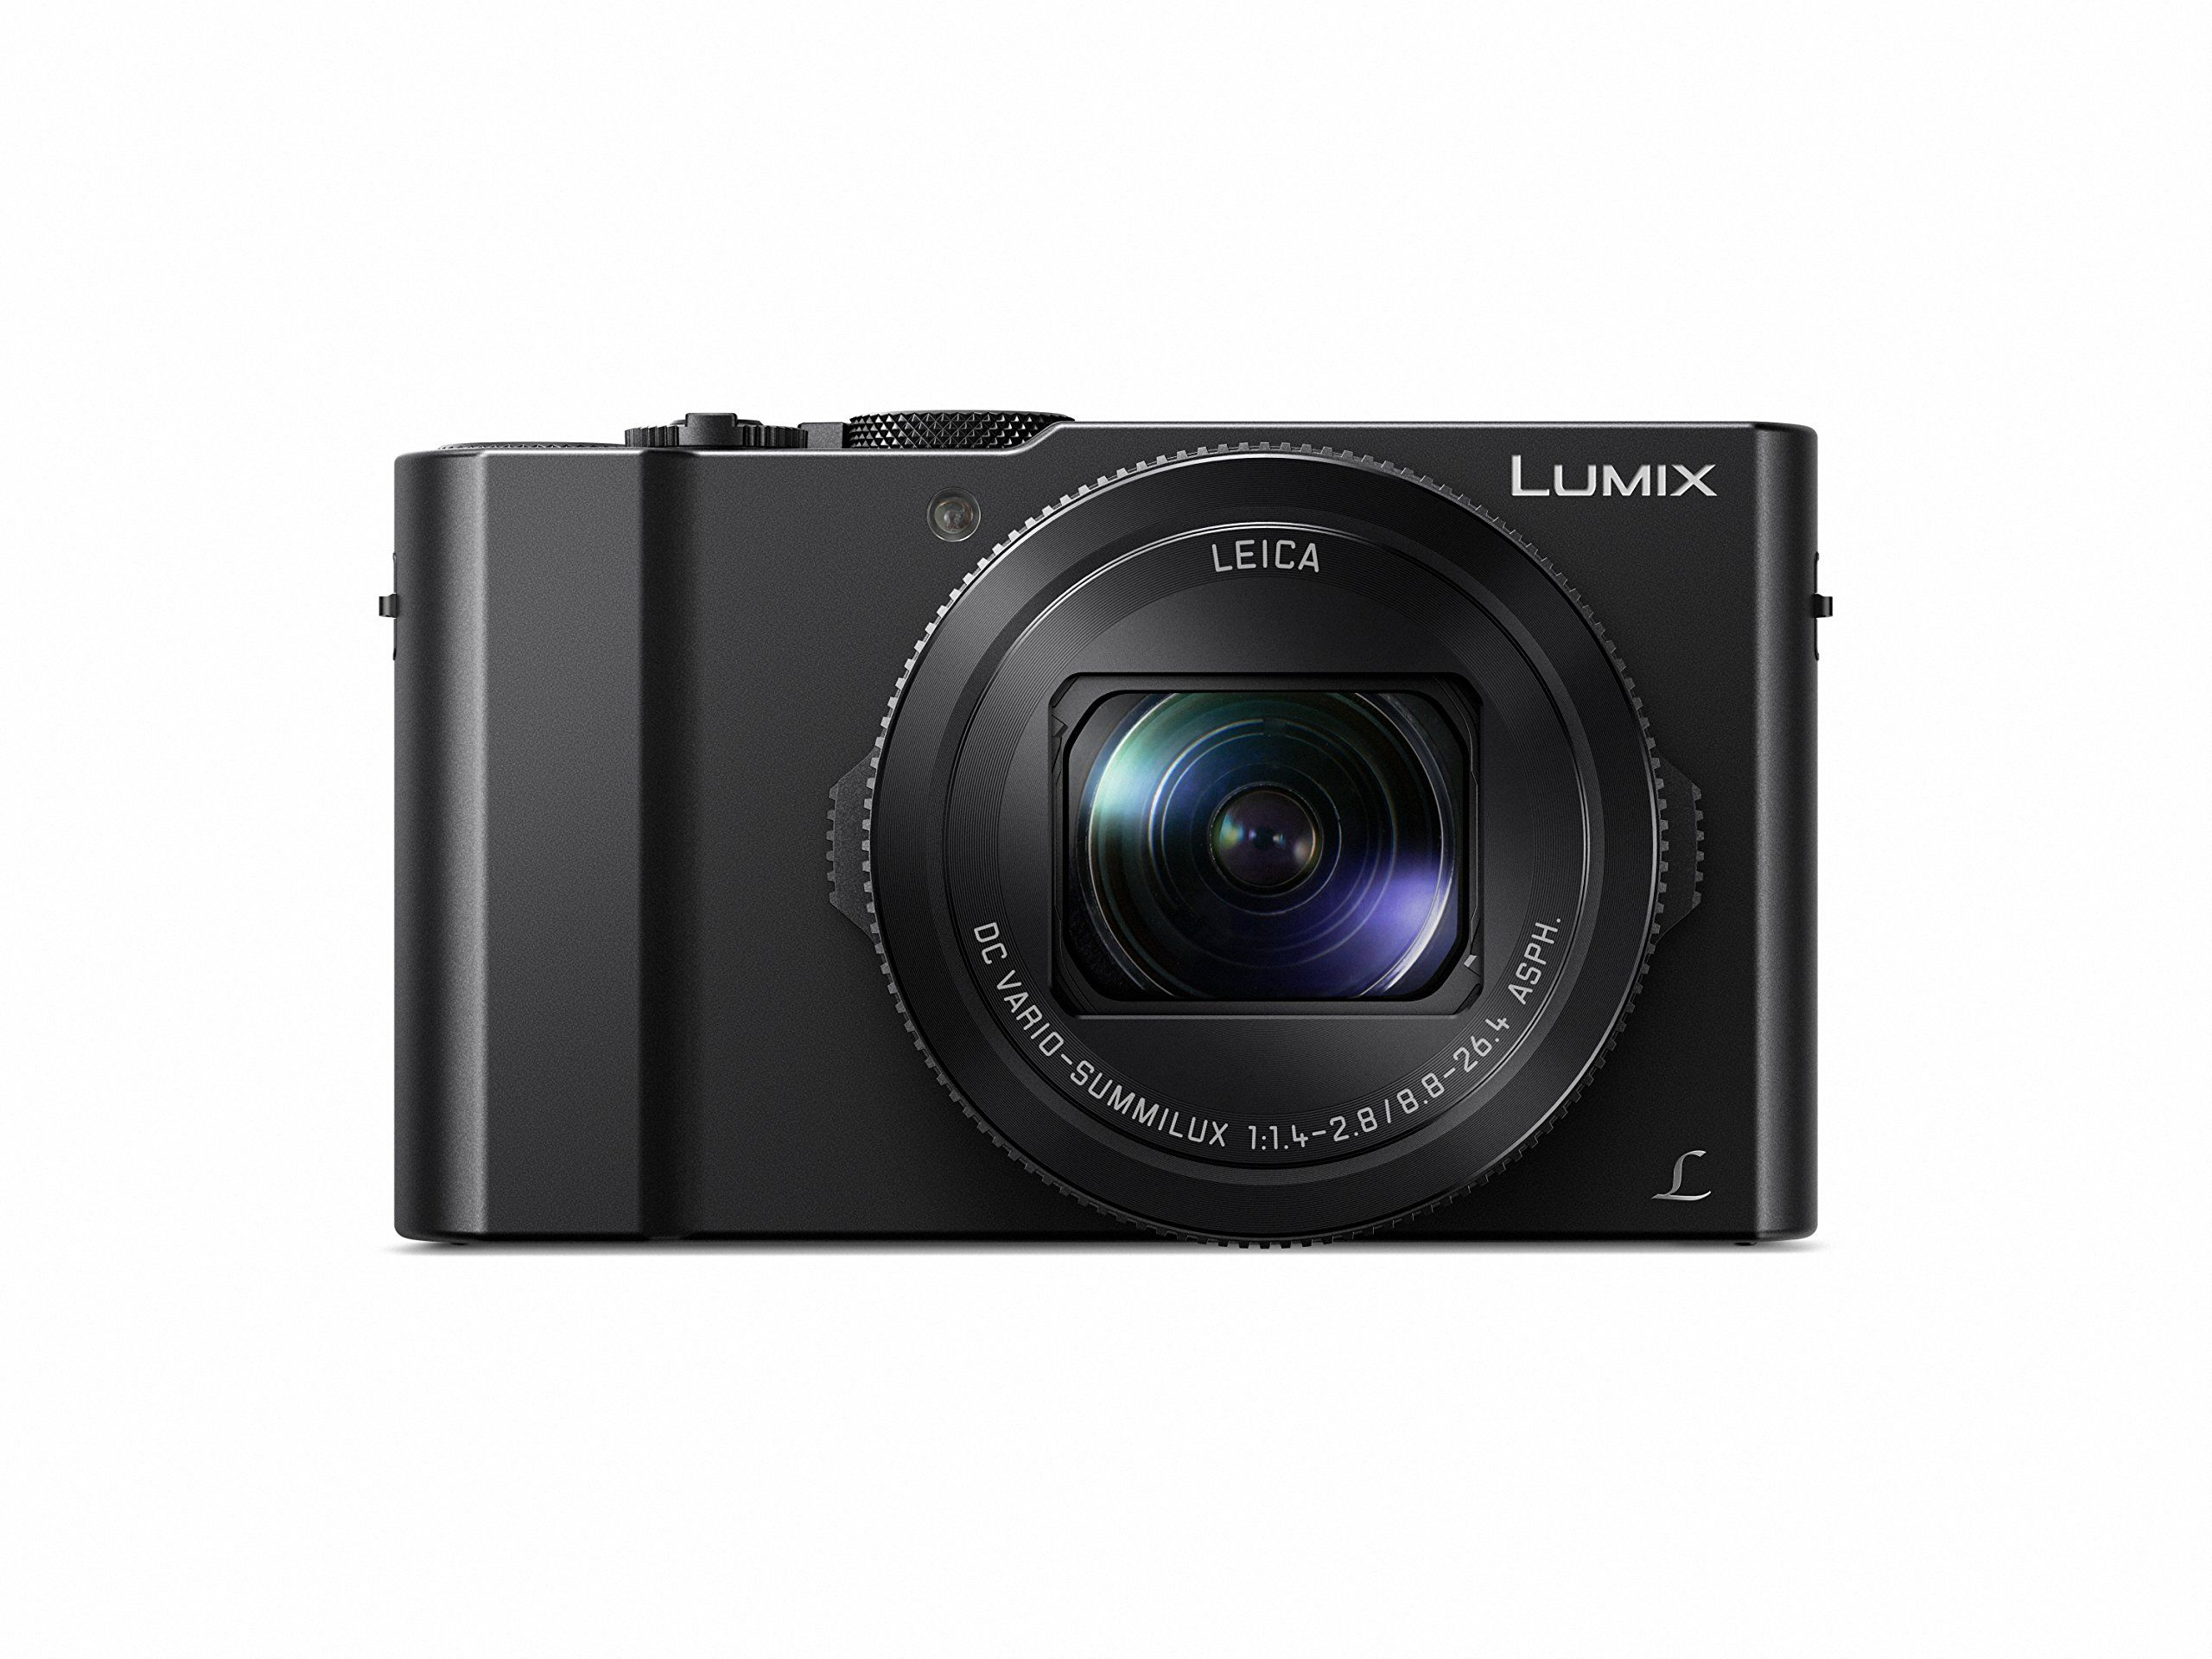 Panasonic Lumix Dmc Lx10k Camera 20 1 Megapixel 1 Quot Sensor 3x 24 72mm F 1 4 2 8 Leica Dc Lens Black Compact Digital Camera Sony Cybershot Compact Camera